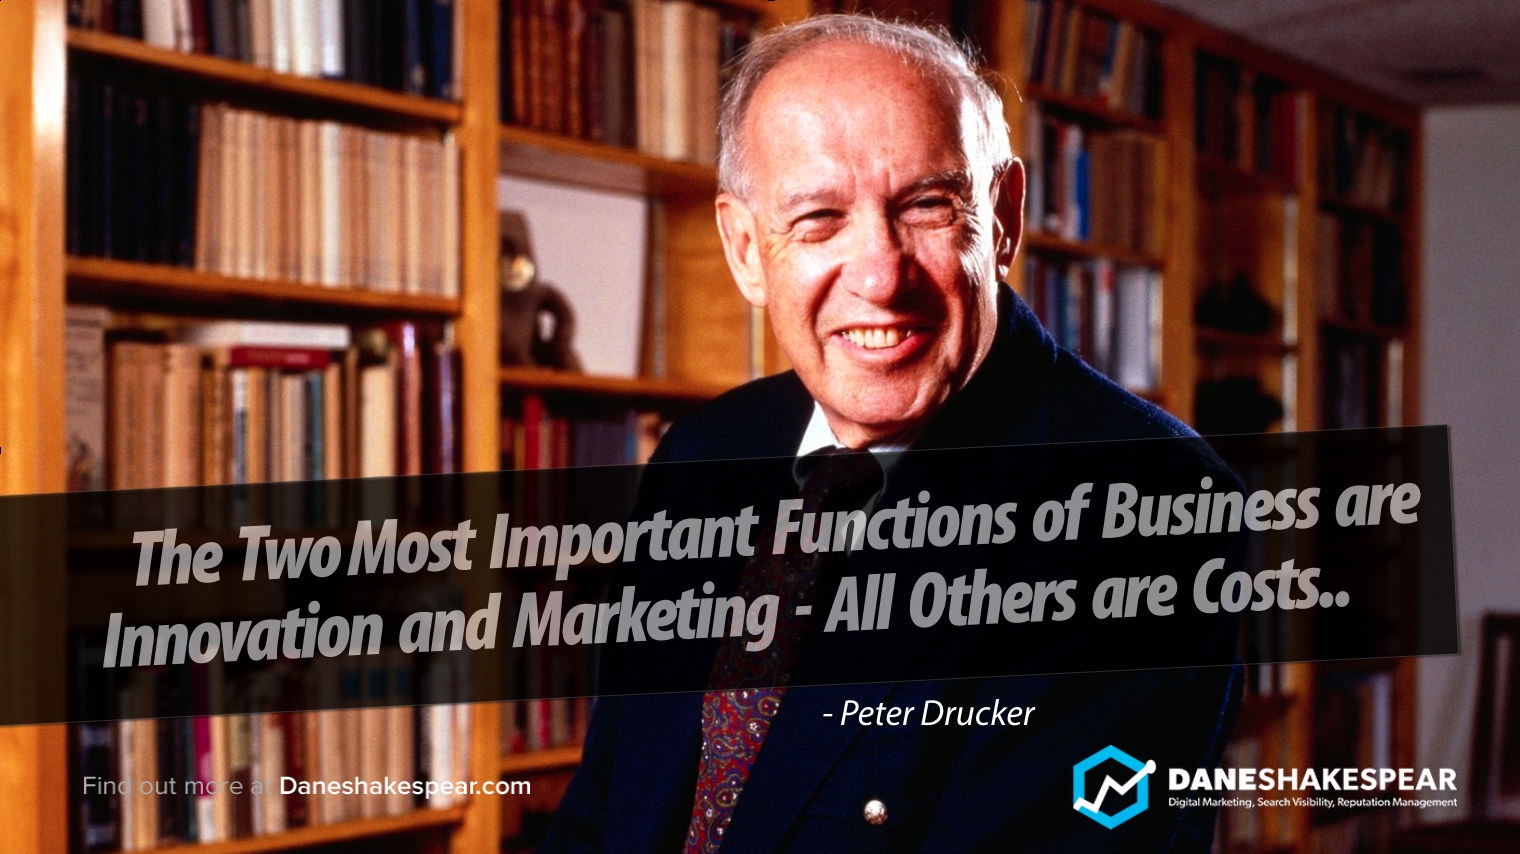 Peter Drucker Quote - Dane Shakespear Marketing